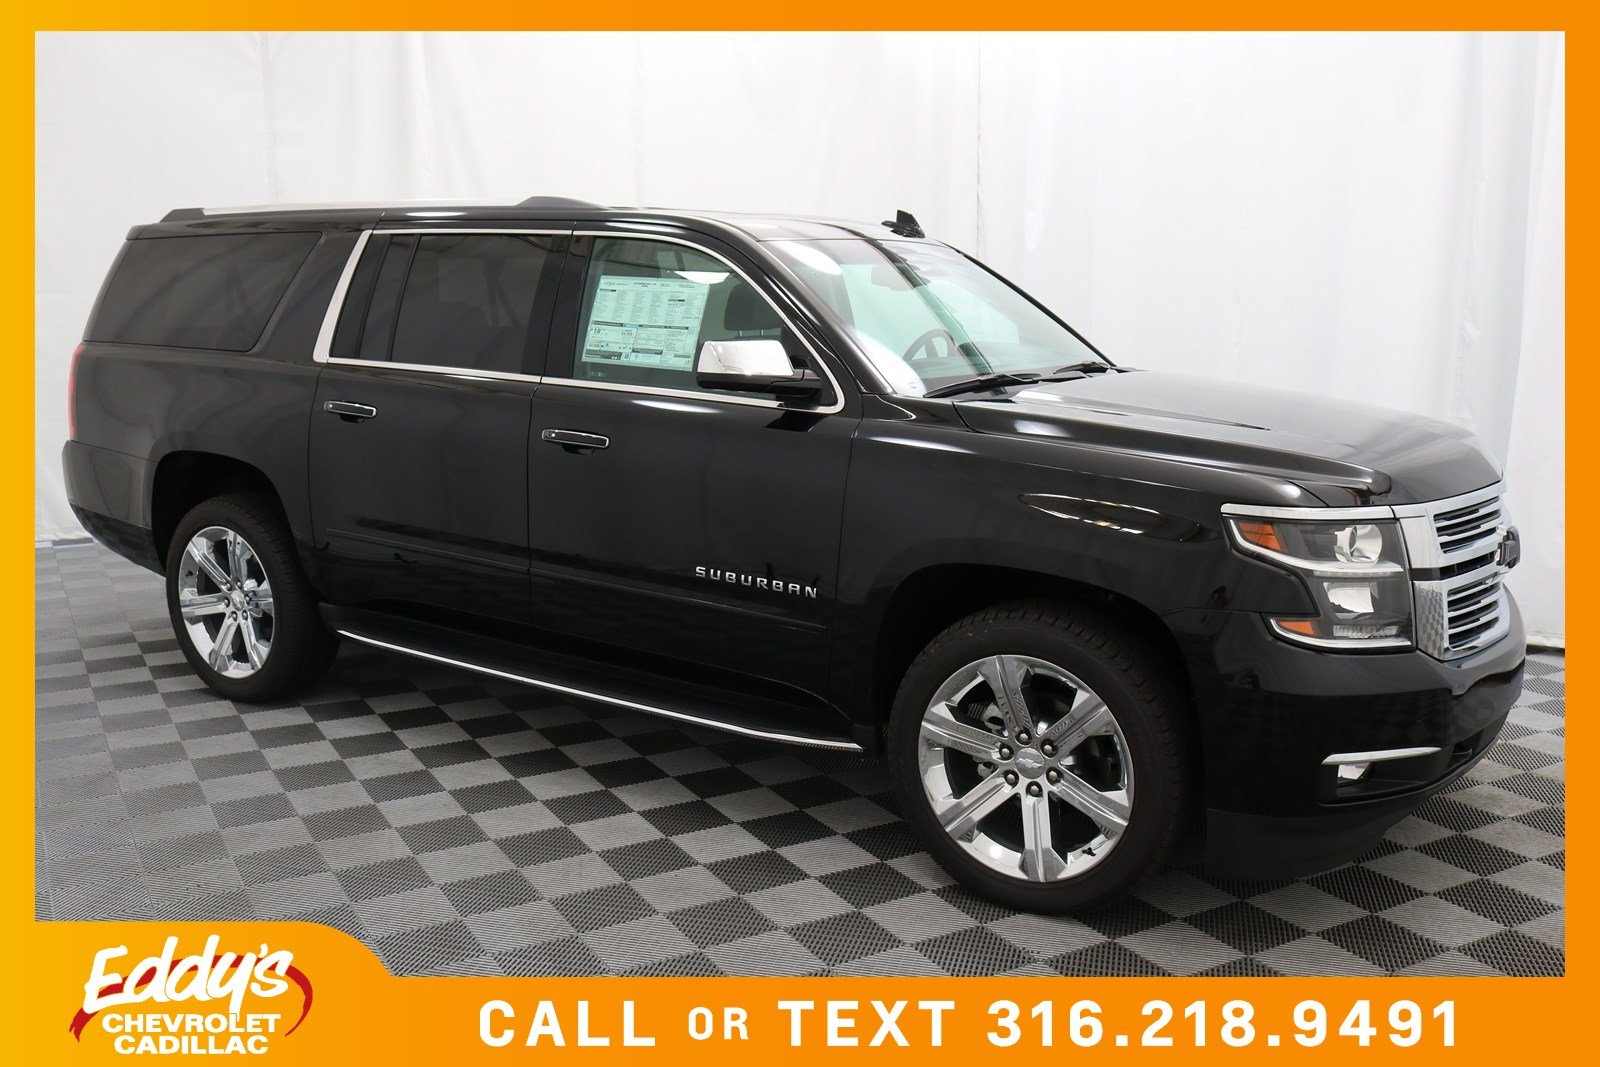 New 2018 Chevrolet Suburban Premier 4x4 SUV In Wichita